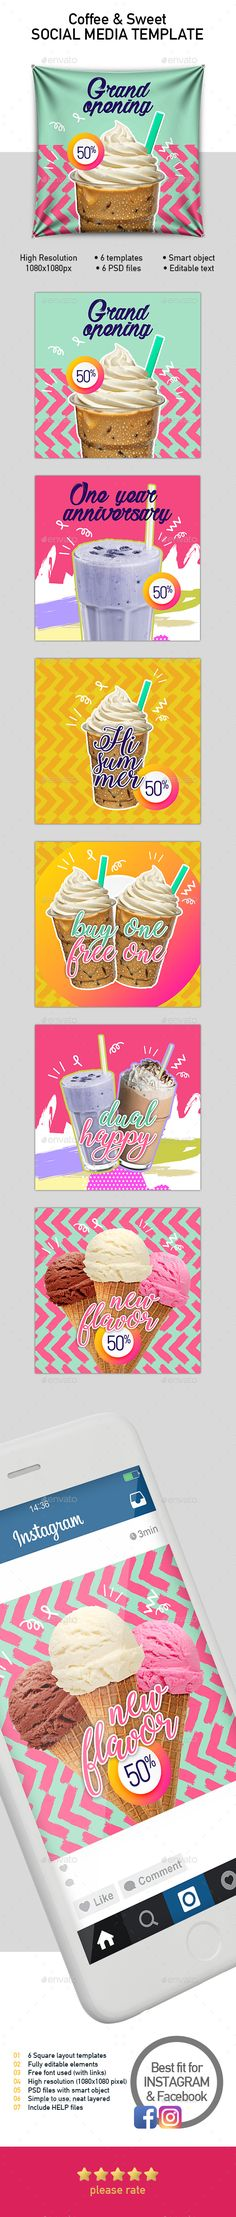 set instagram templates for food and drinks business tunagaga social media web elements